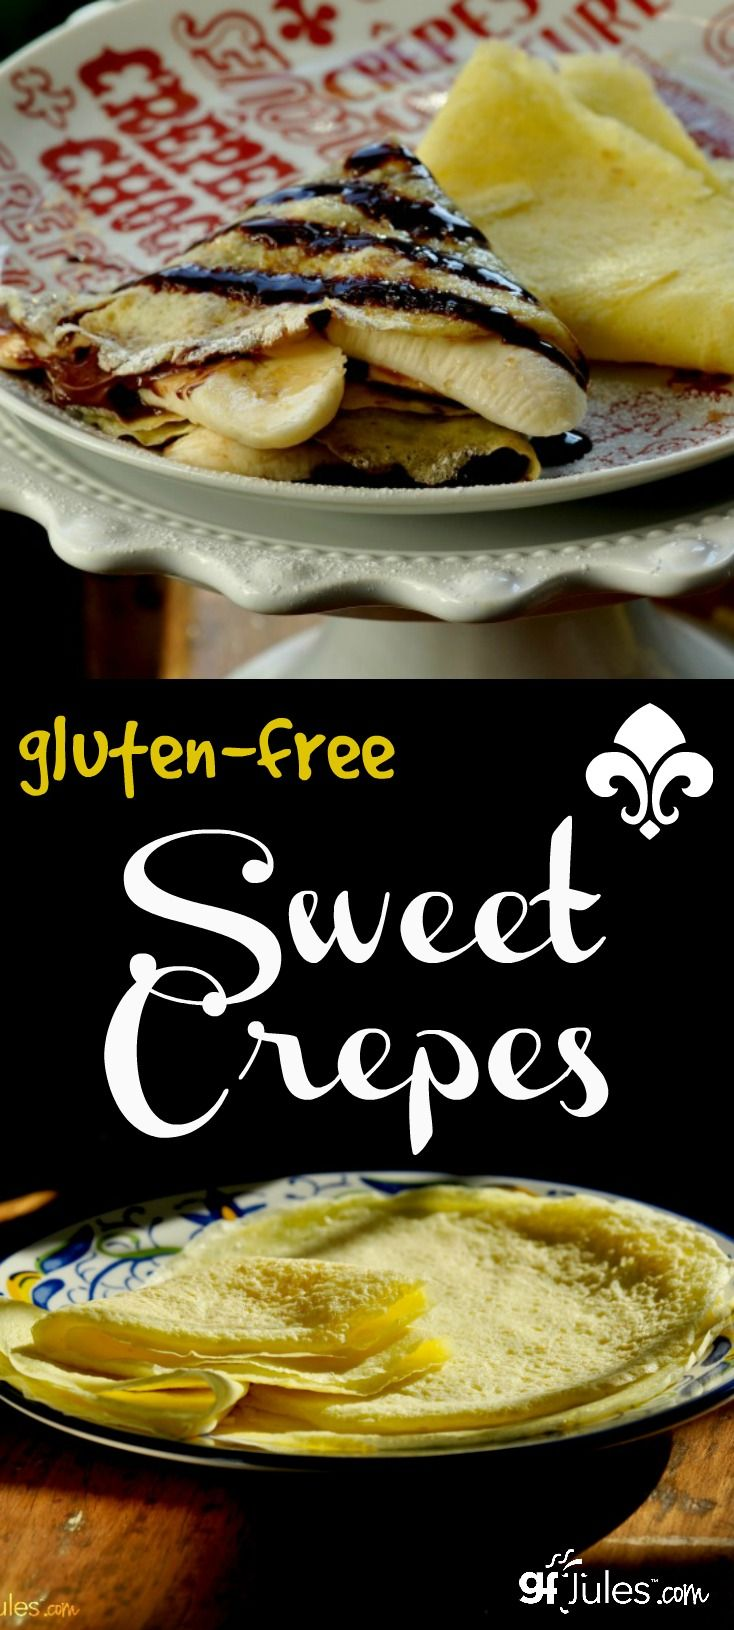 Sweet gluten-free crepes ... is there anything better? So light and airy and they go with any filling you like. Much easier and faster to make than you might imagine with this easy recipe! gfJules